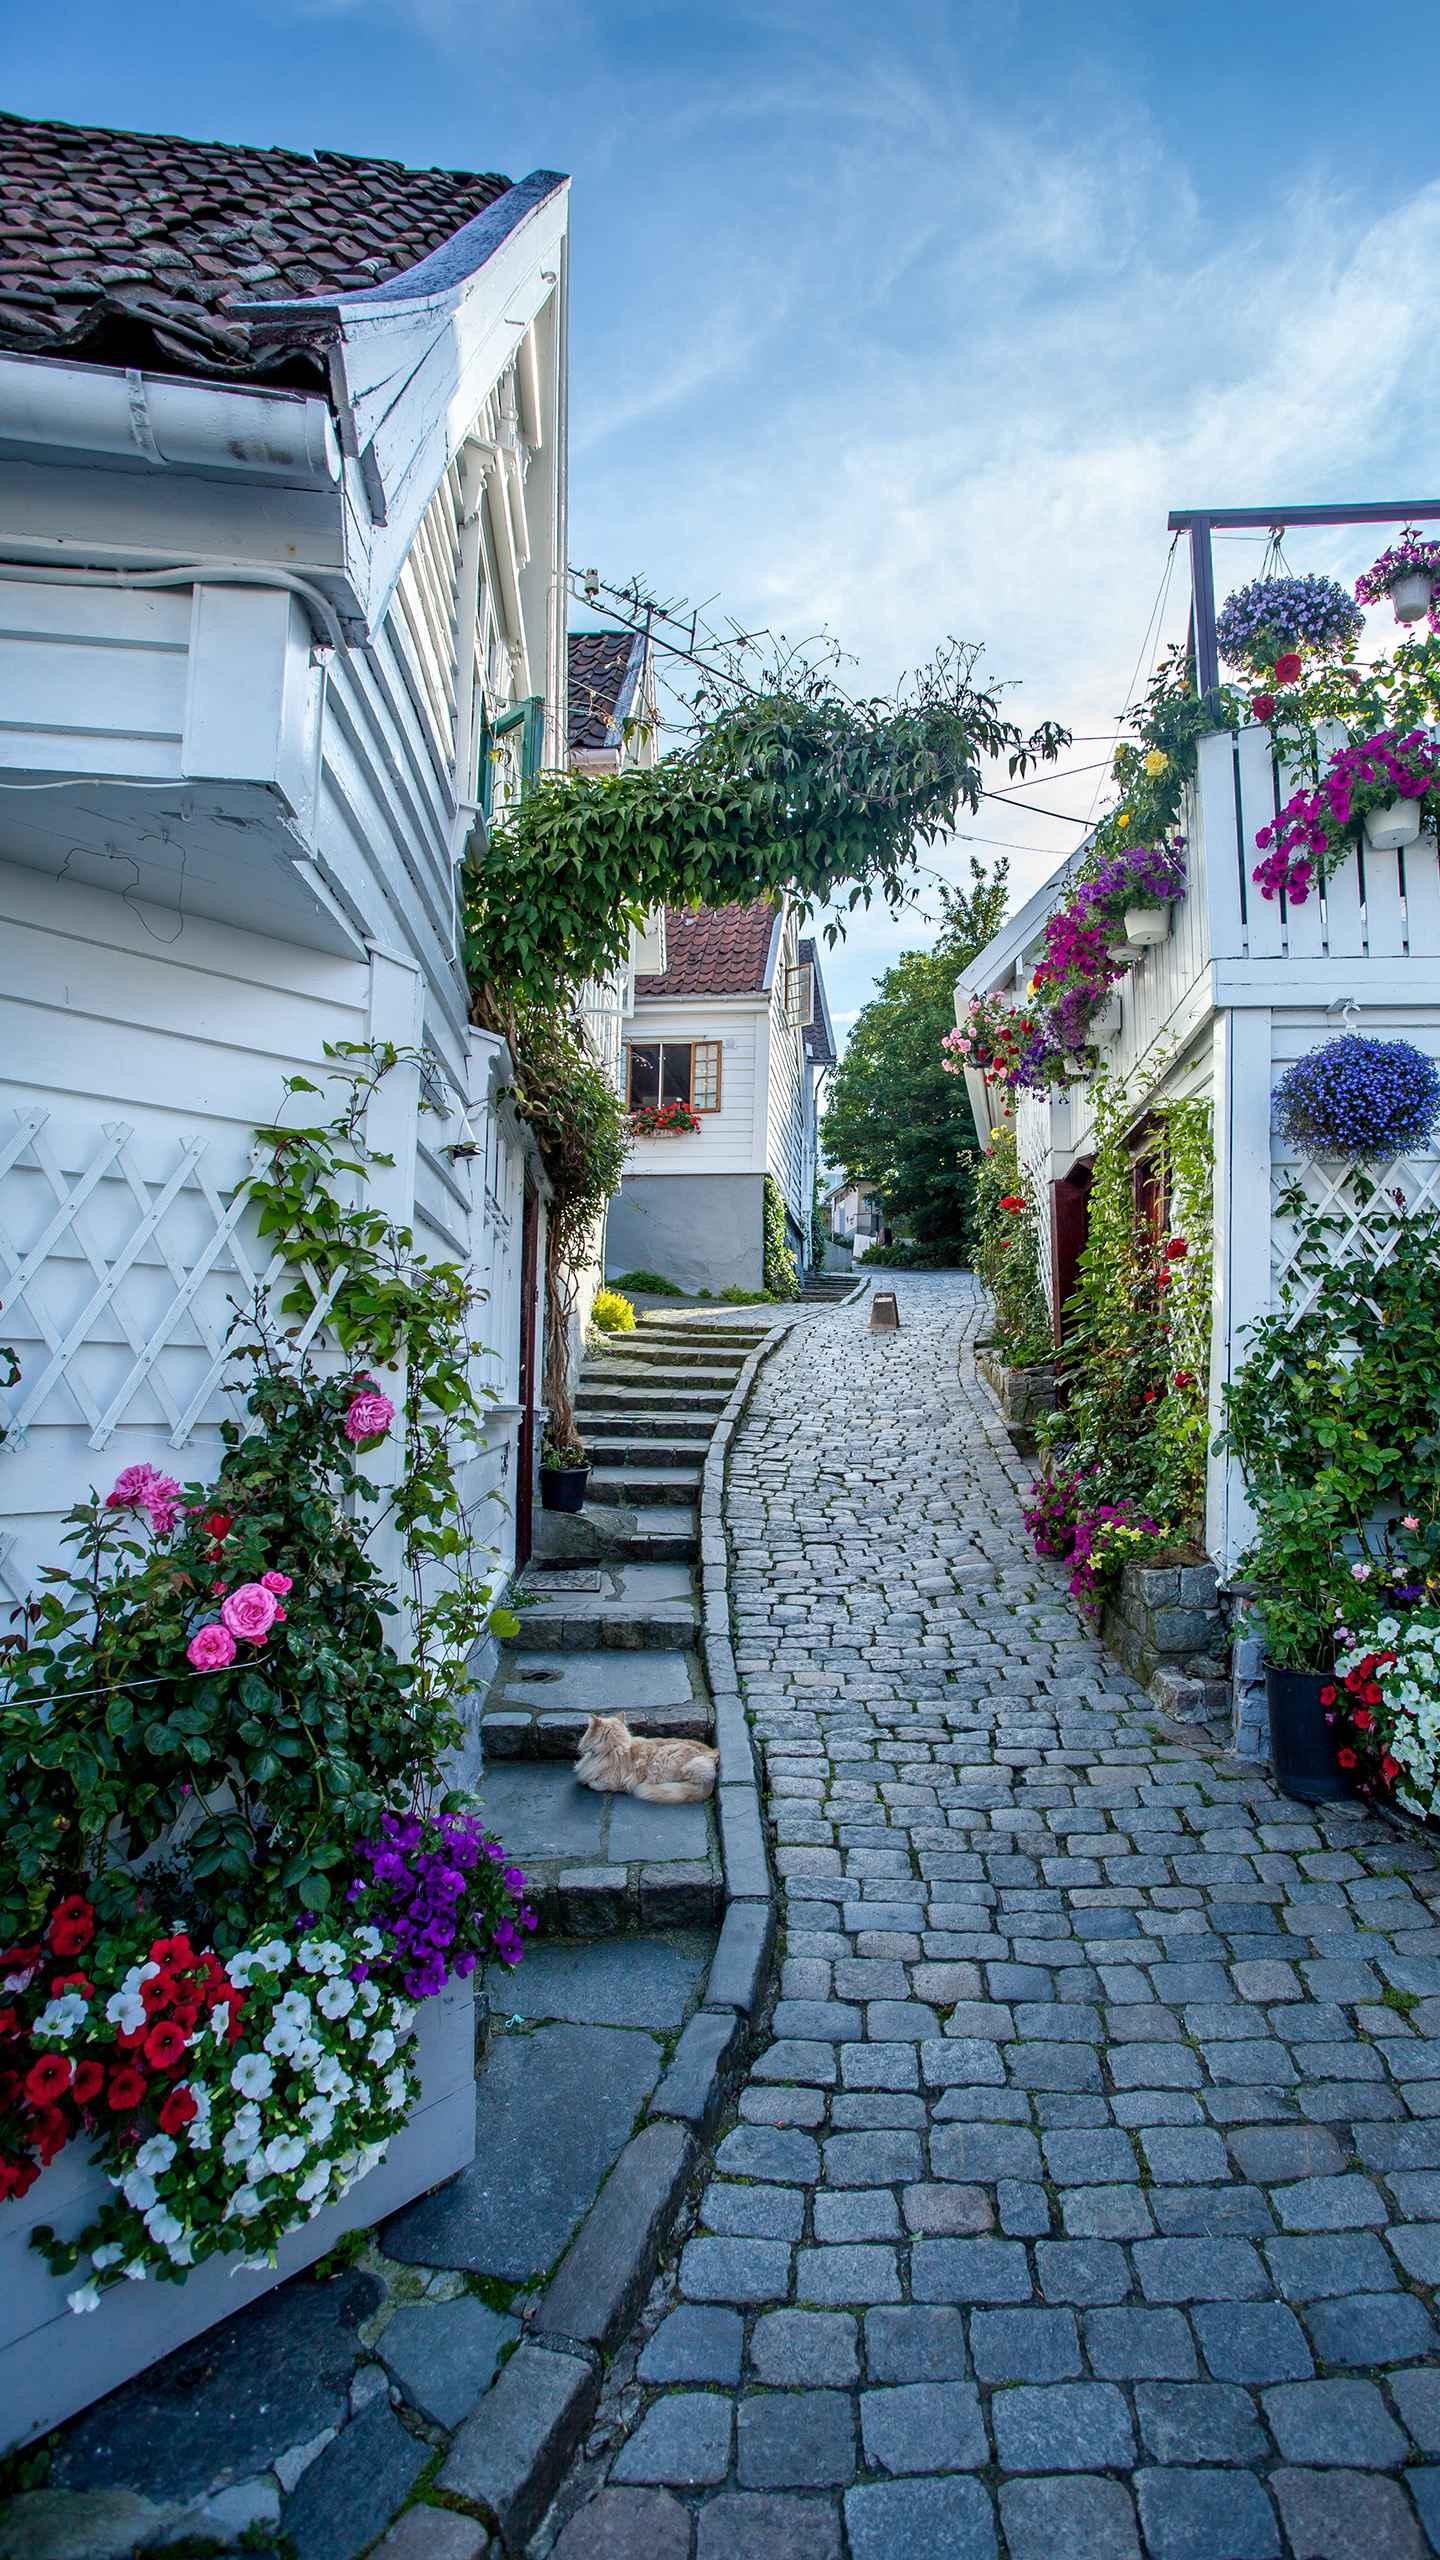 Norway - Stavanger walks through the narrow alleys in the old town, passing through rows of old white cottages and enjoying the laid-back Nordic time.